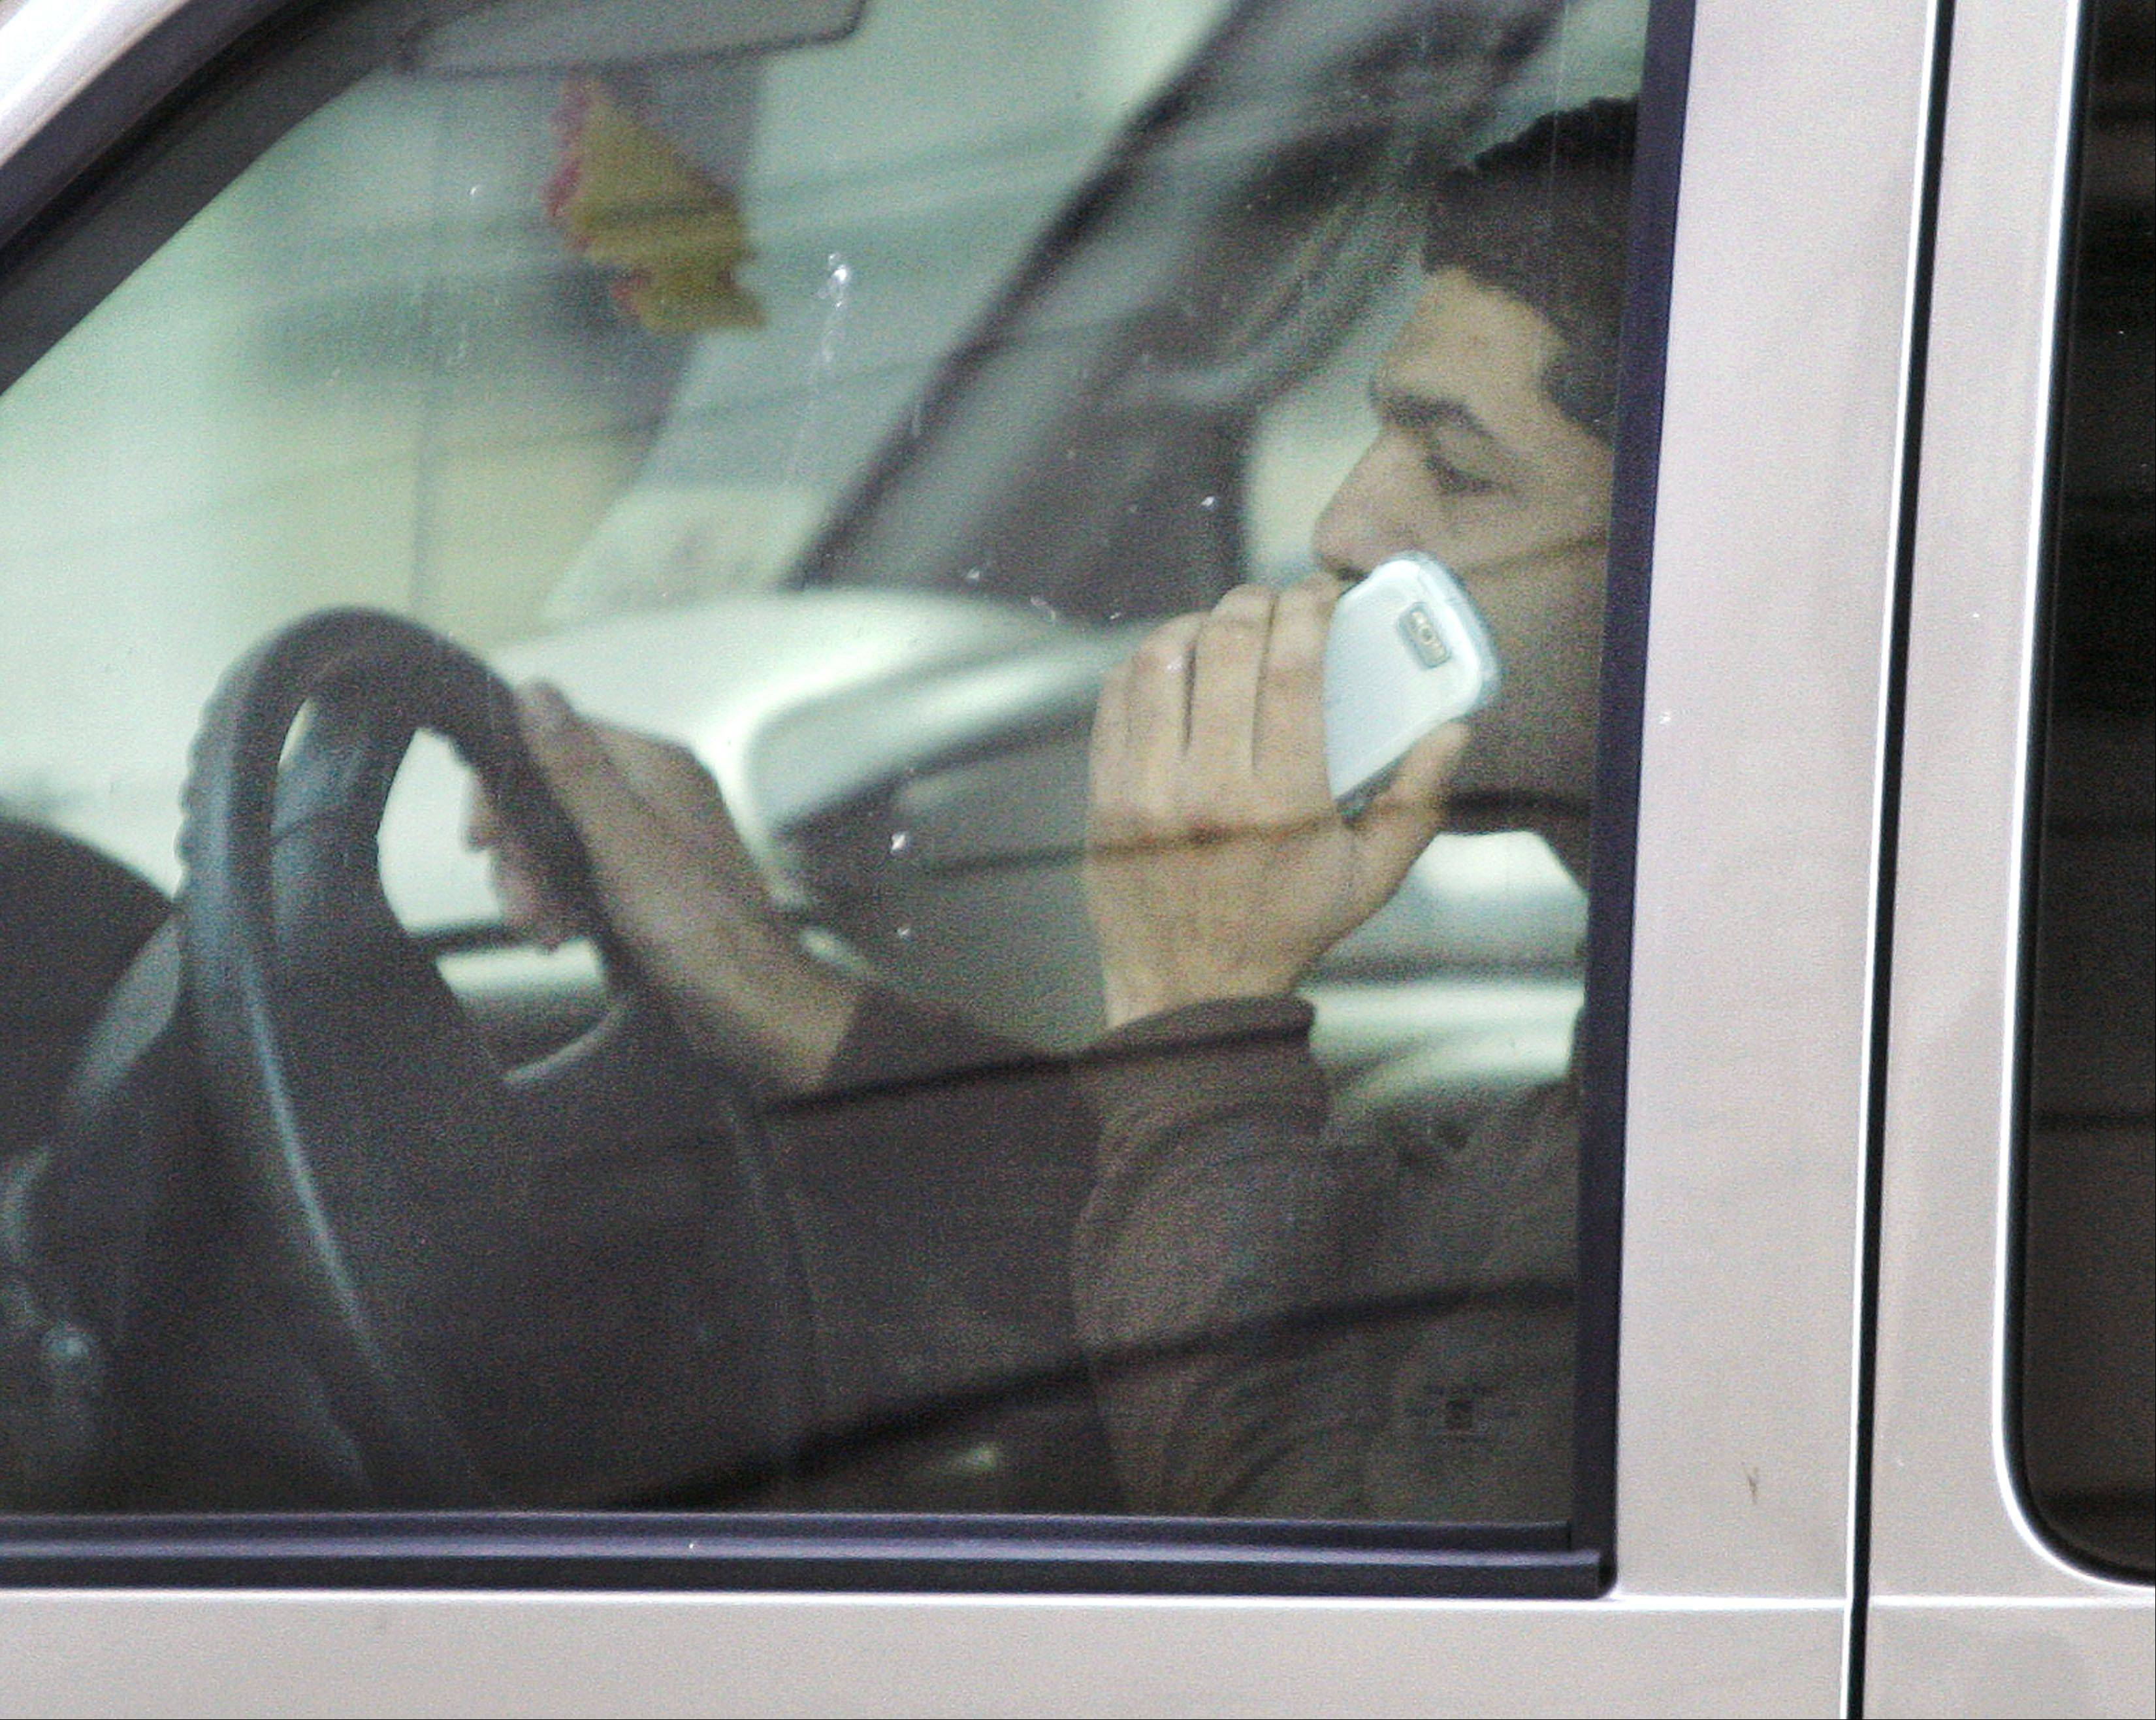 House votes to ban talking on phone while driving